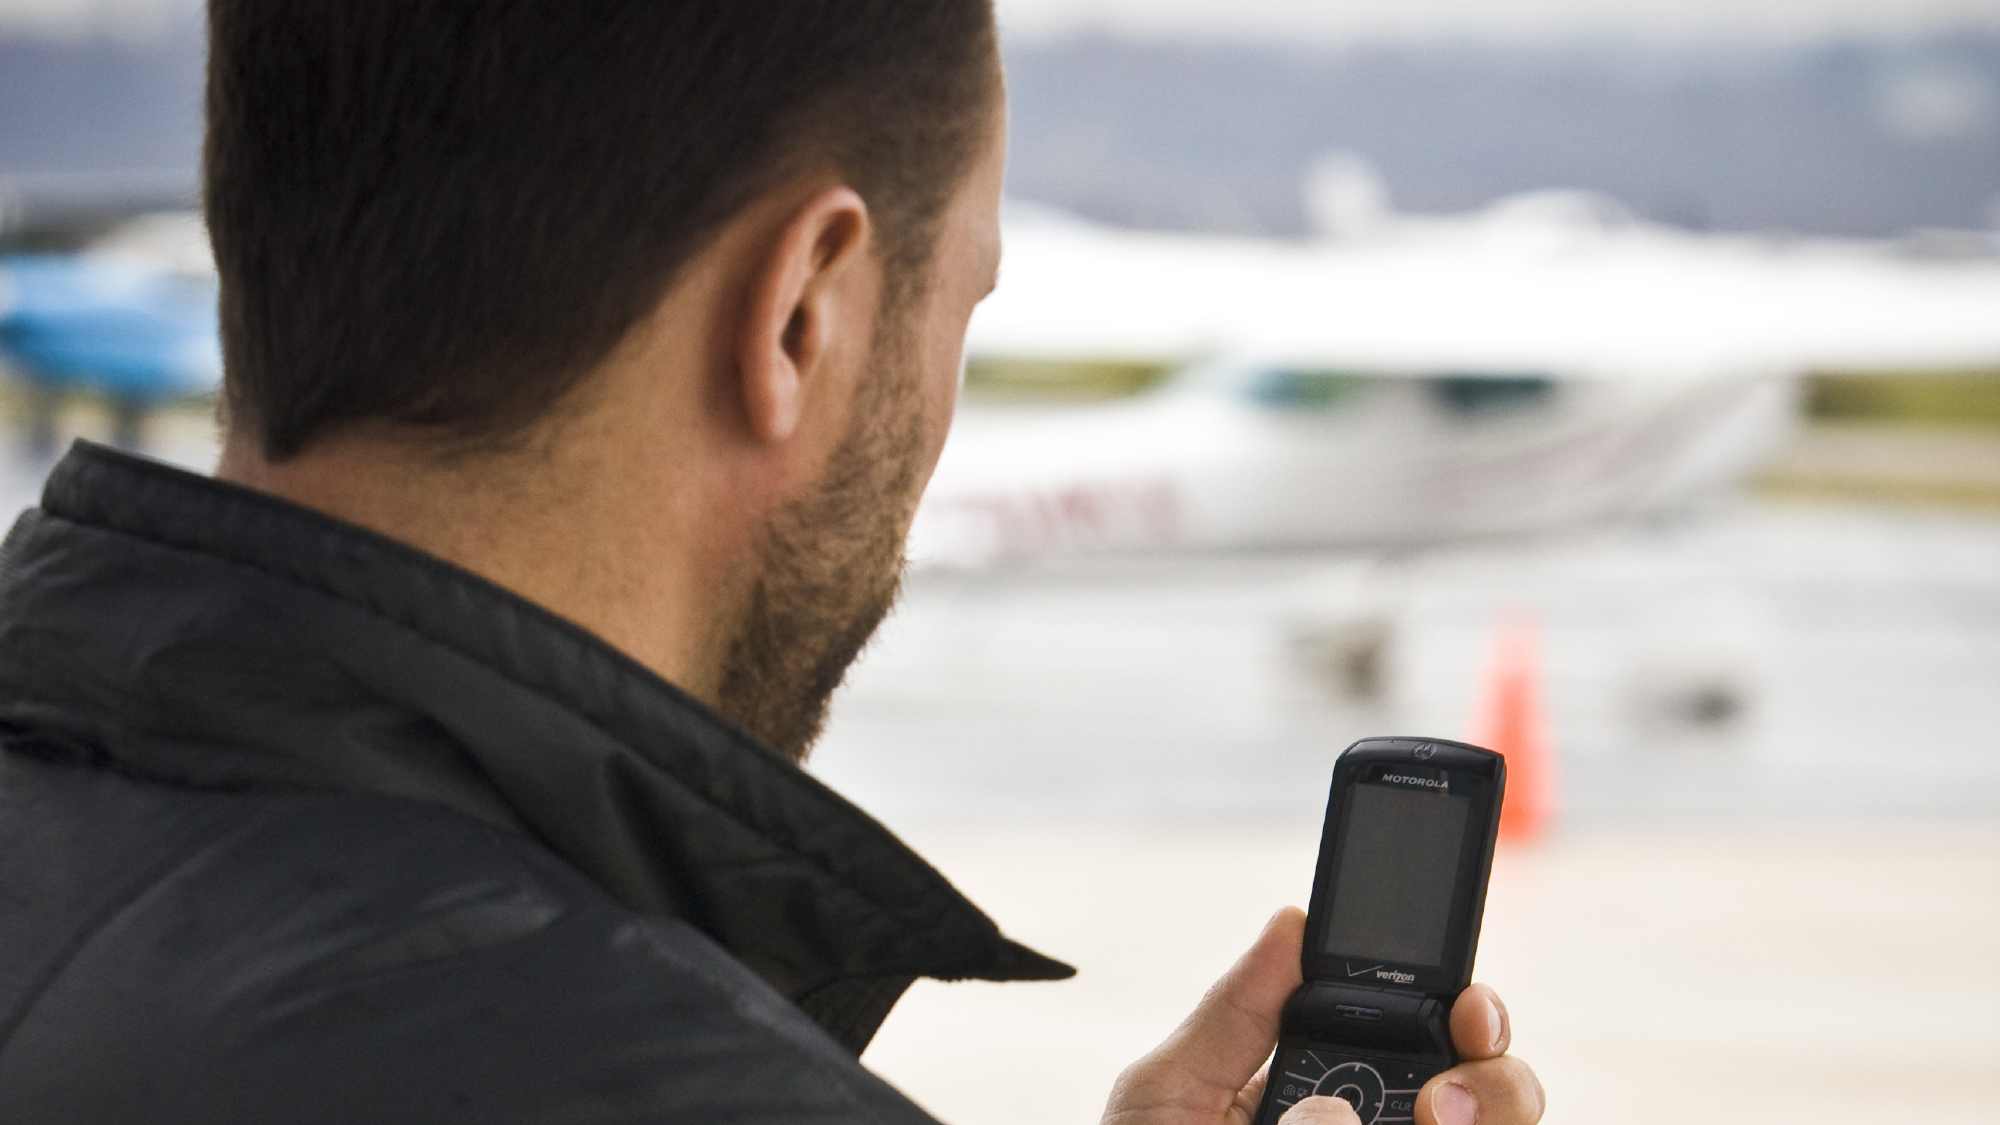 Flight service can send you a text message to help you remember to close your VFR flight plan.